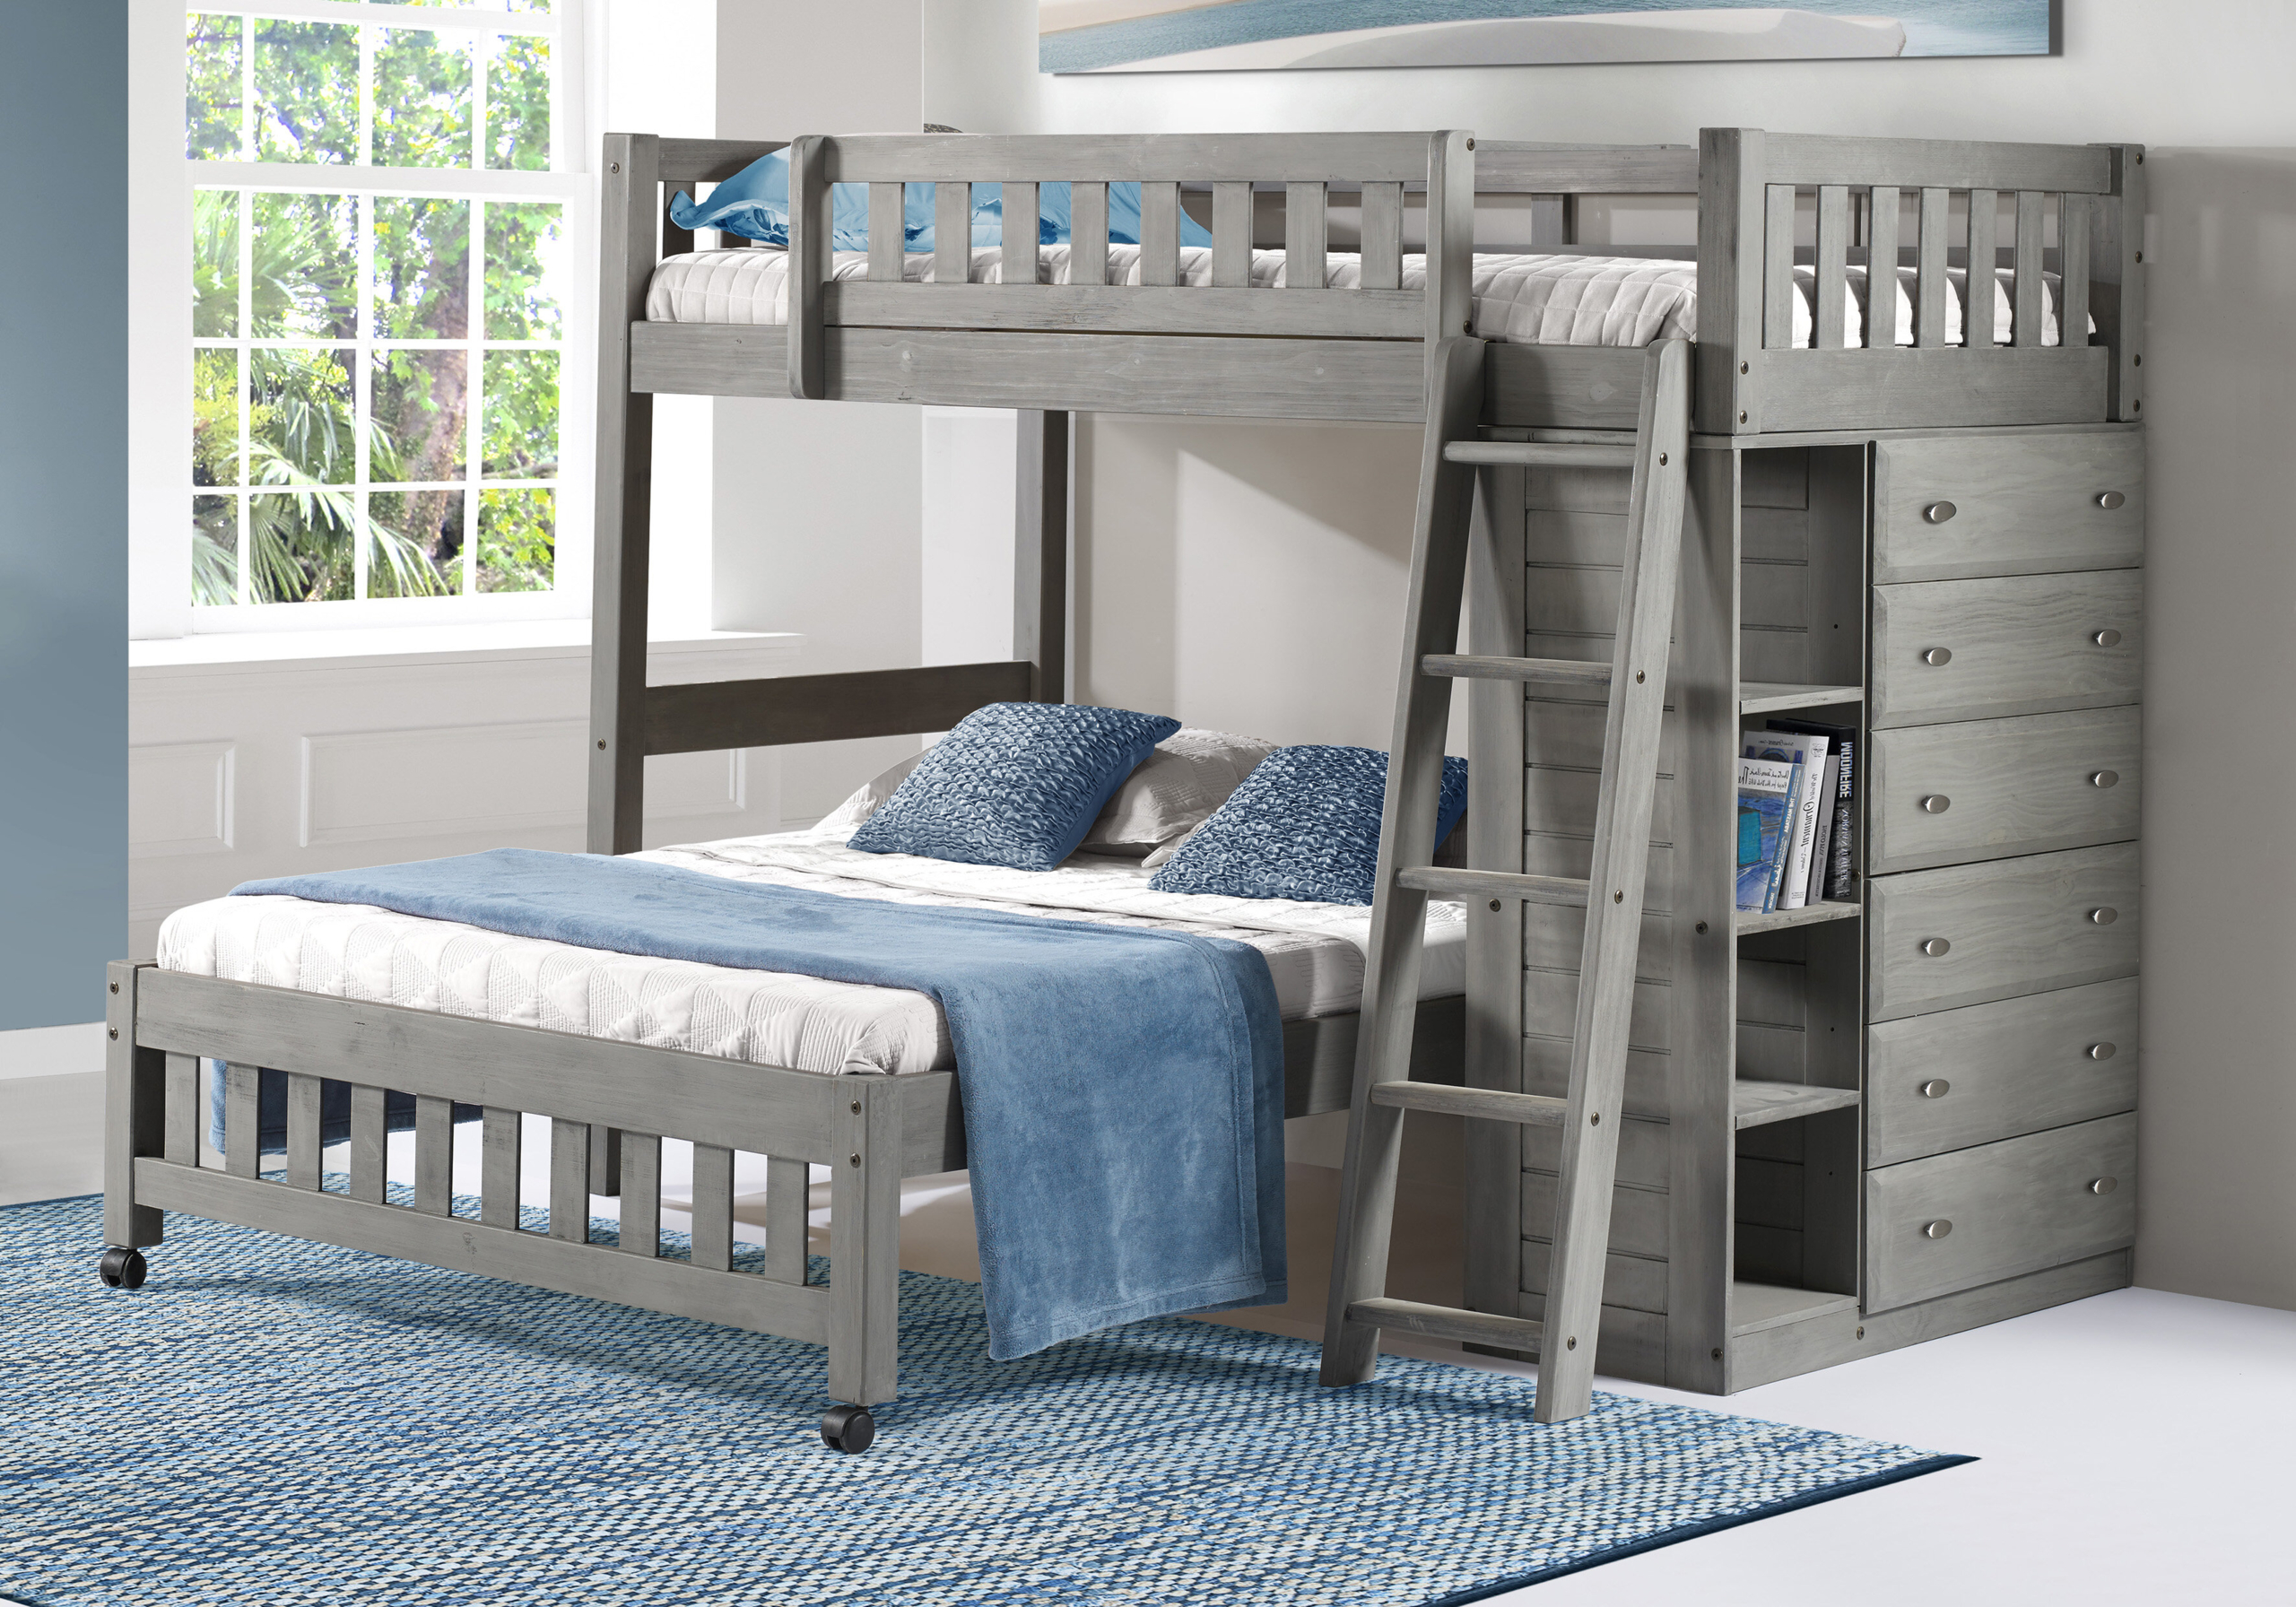 Picture of: Bunk Beds With Dressers You Ll Love In 2020 Visualhunt